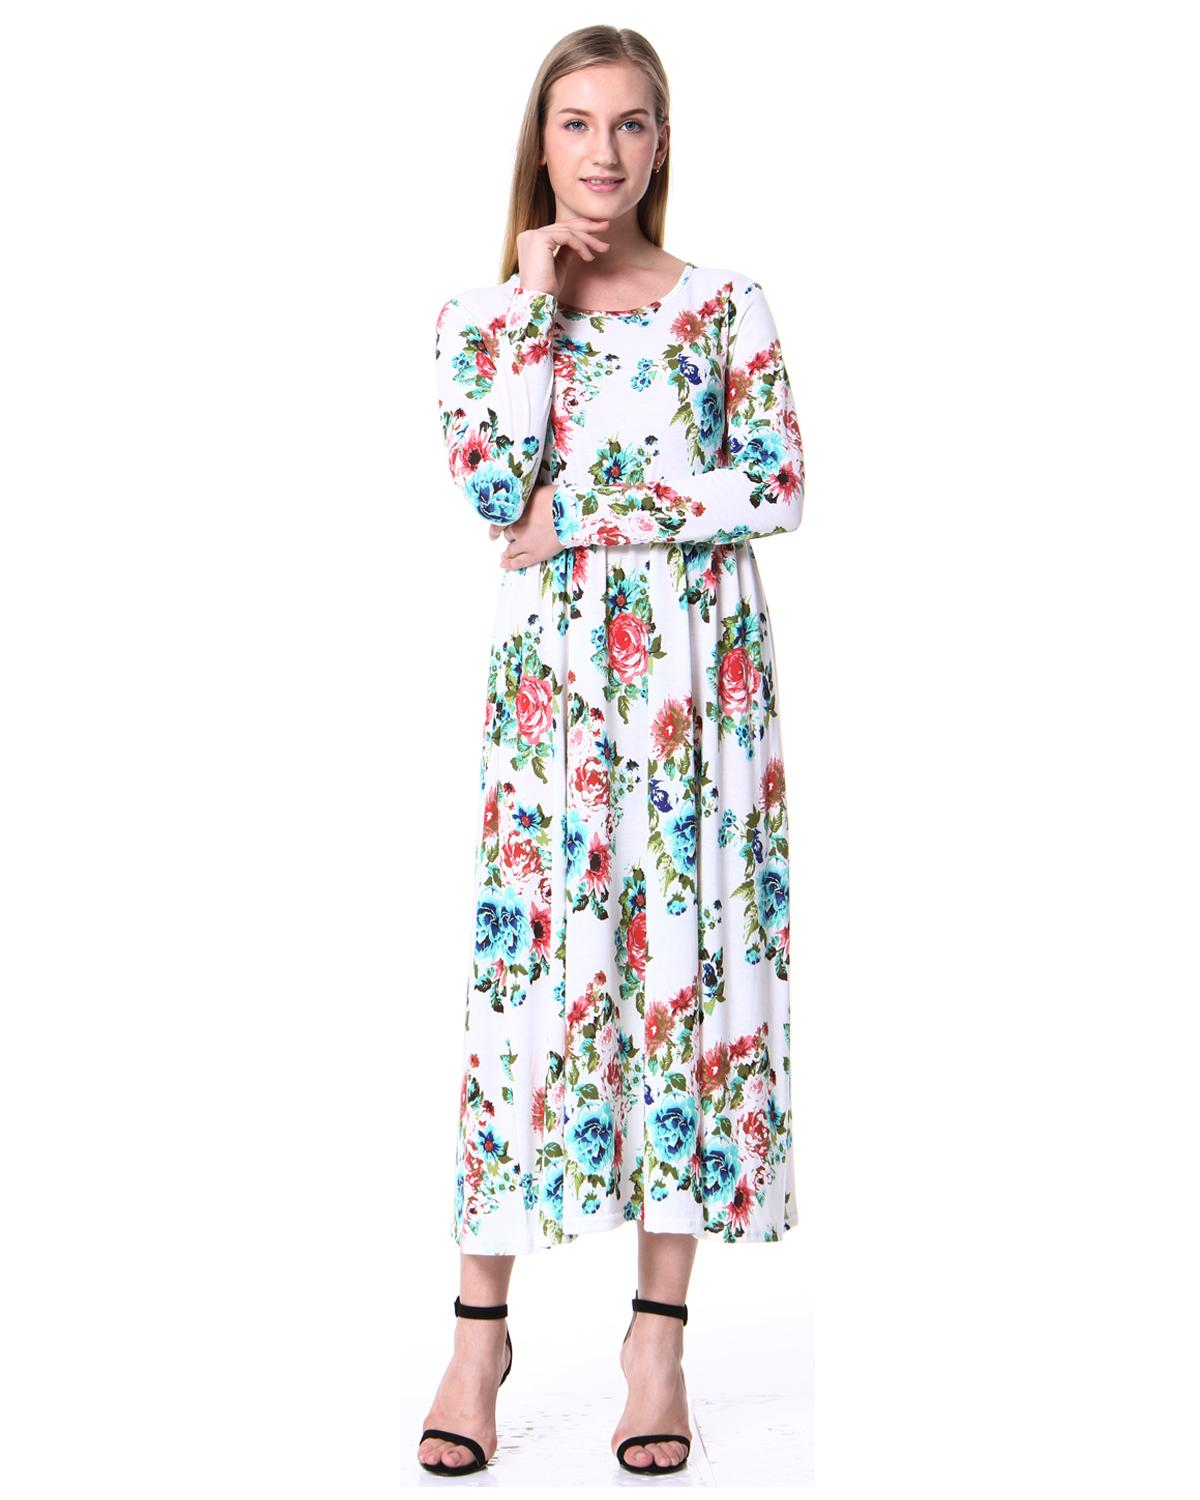 31344f0e14b Women S Spring Fashion Printed Long Dress Long Sleeve Empire Flower Mid  Calf A Line Dress 2019 Spring Summer Vintage Dress Ropa Cocktail Dress  Party Cute ...